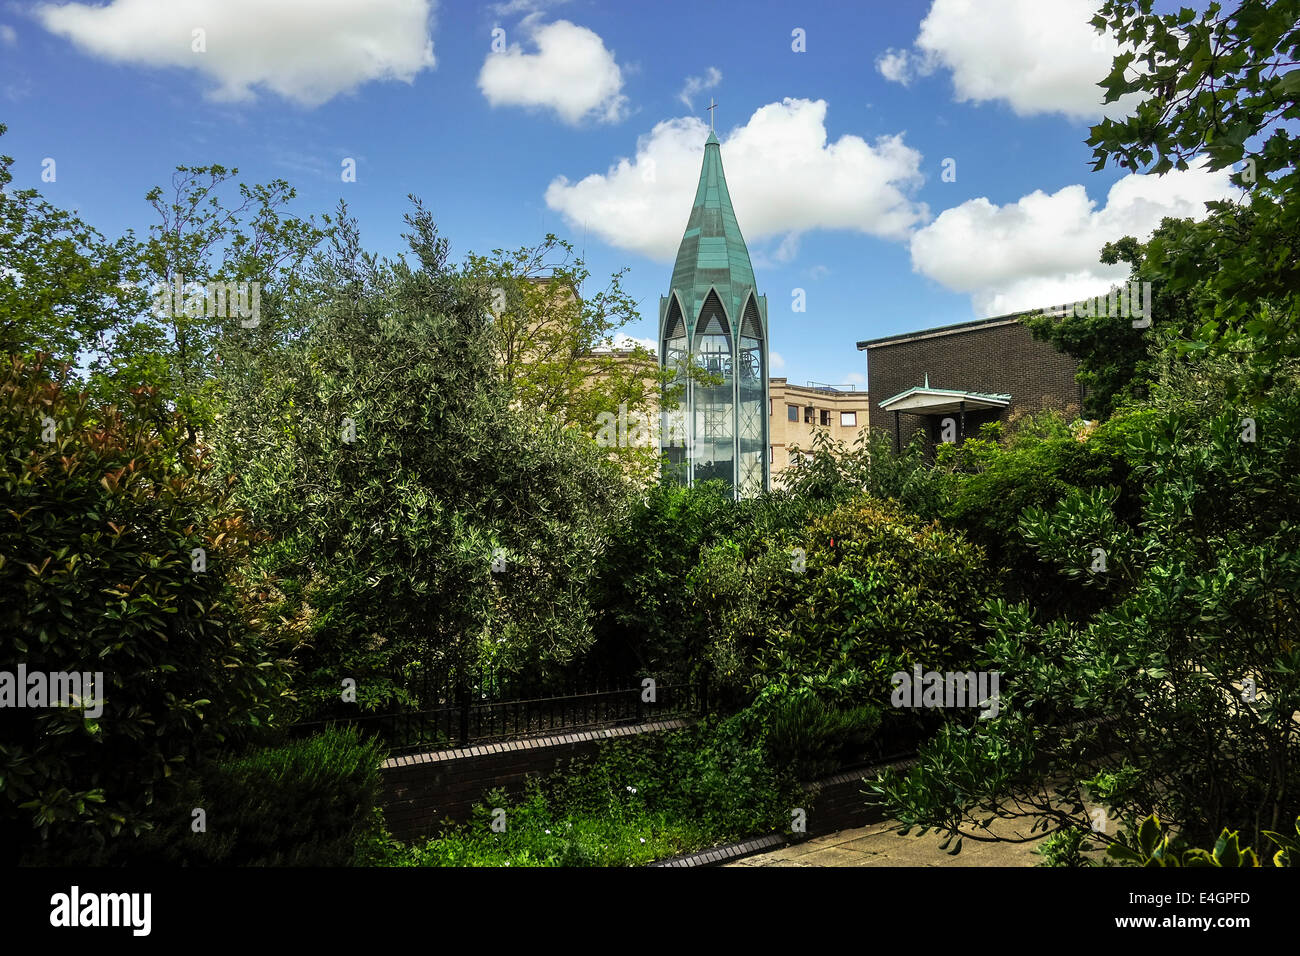 The garden in St Martins Square in Basildon Town Centre. - Stock Image